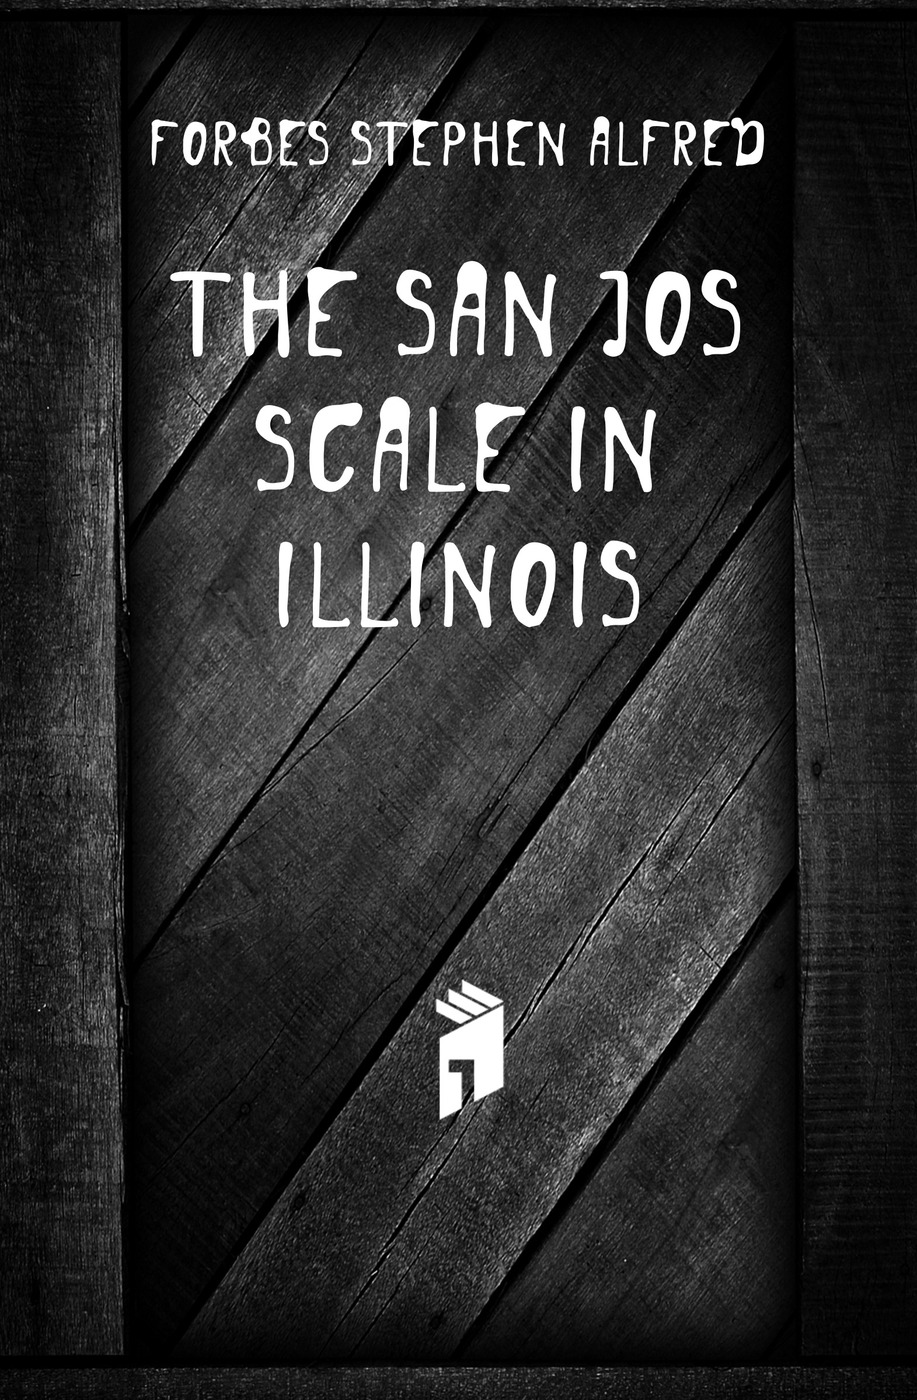 Forbes Stephen Alfred The San Jose Scale In Illinois